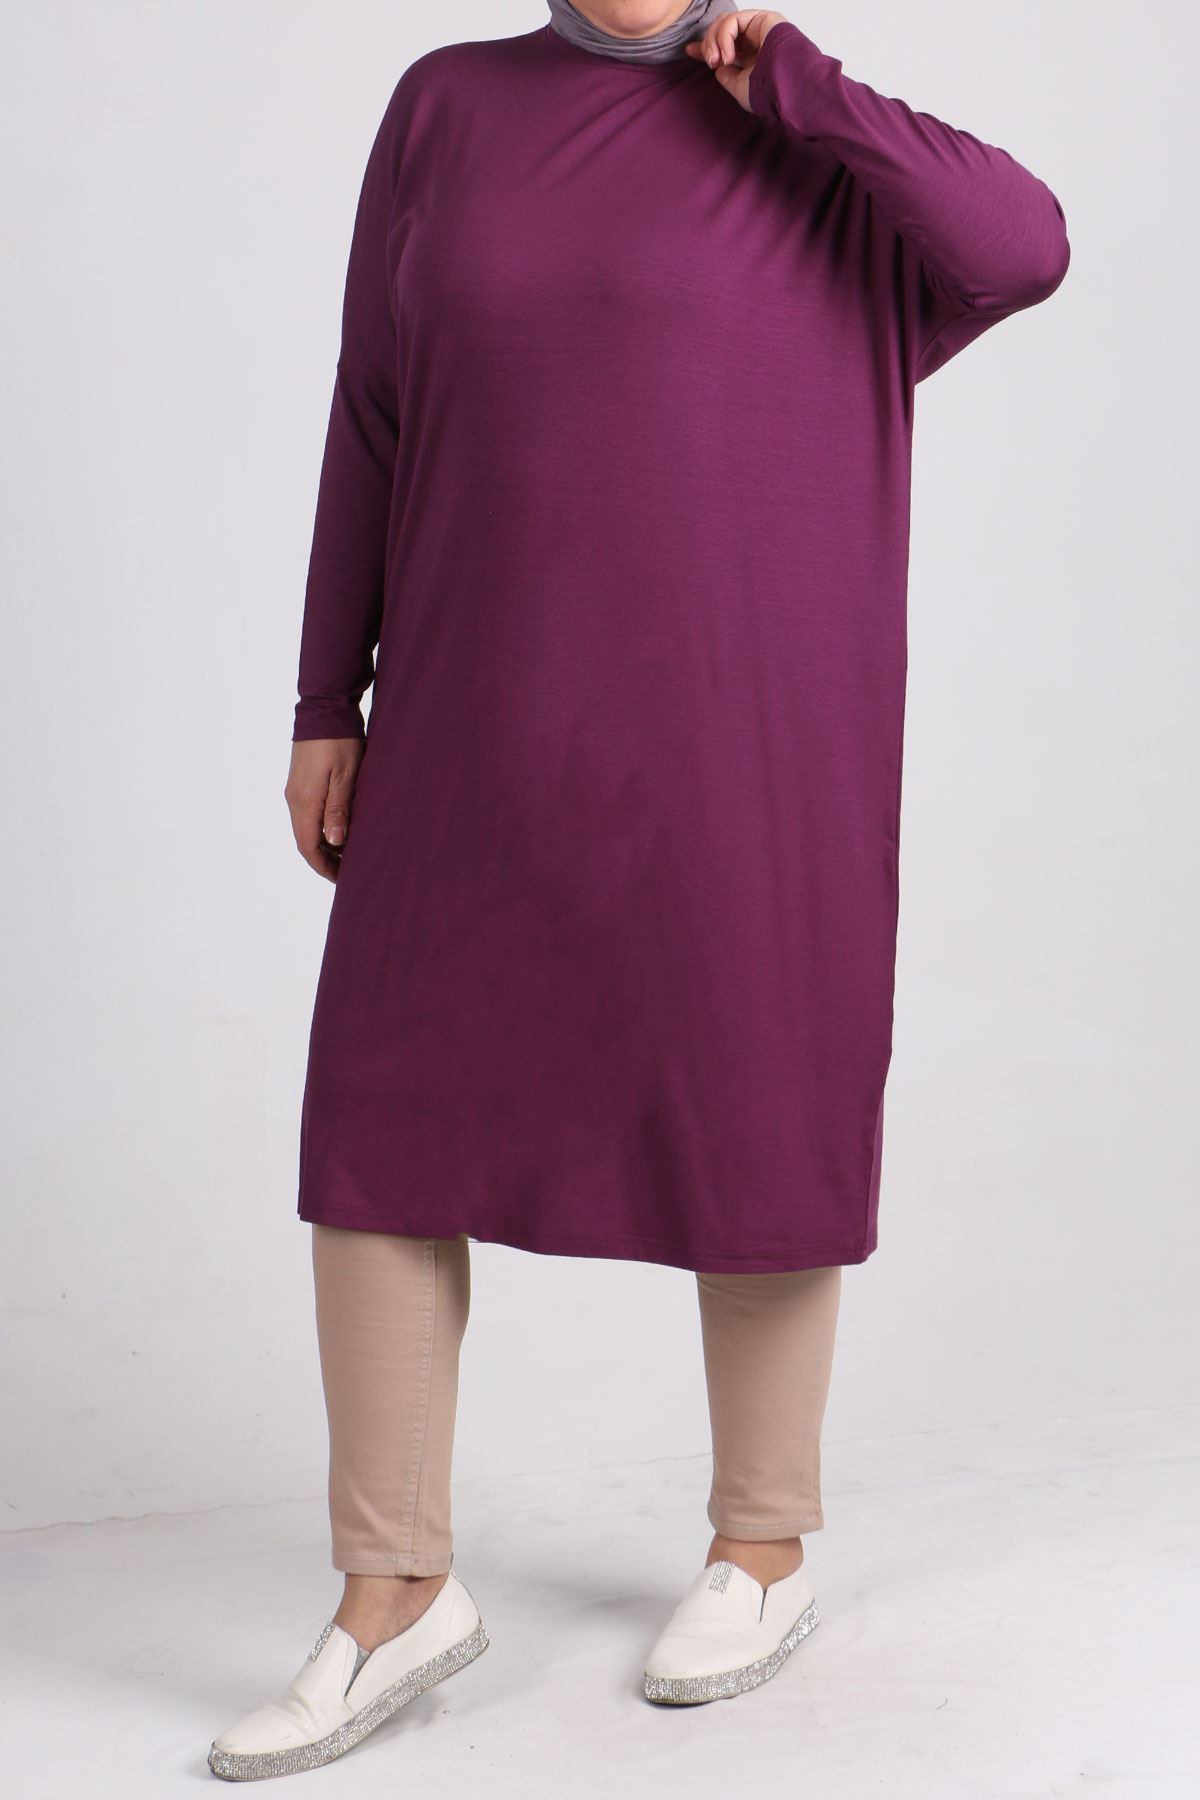 8240 Plus Size Tunic with Low Sleeve - Lilac